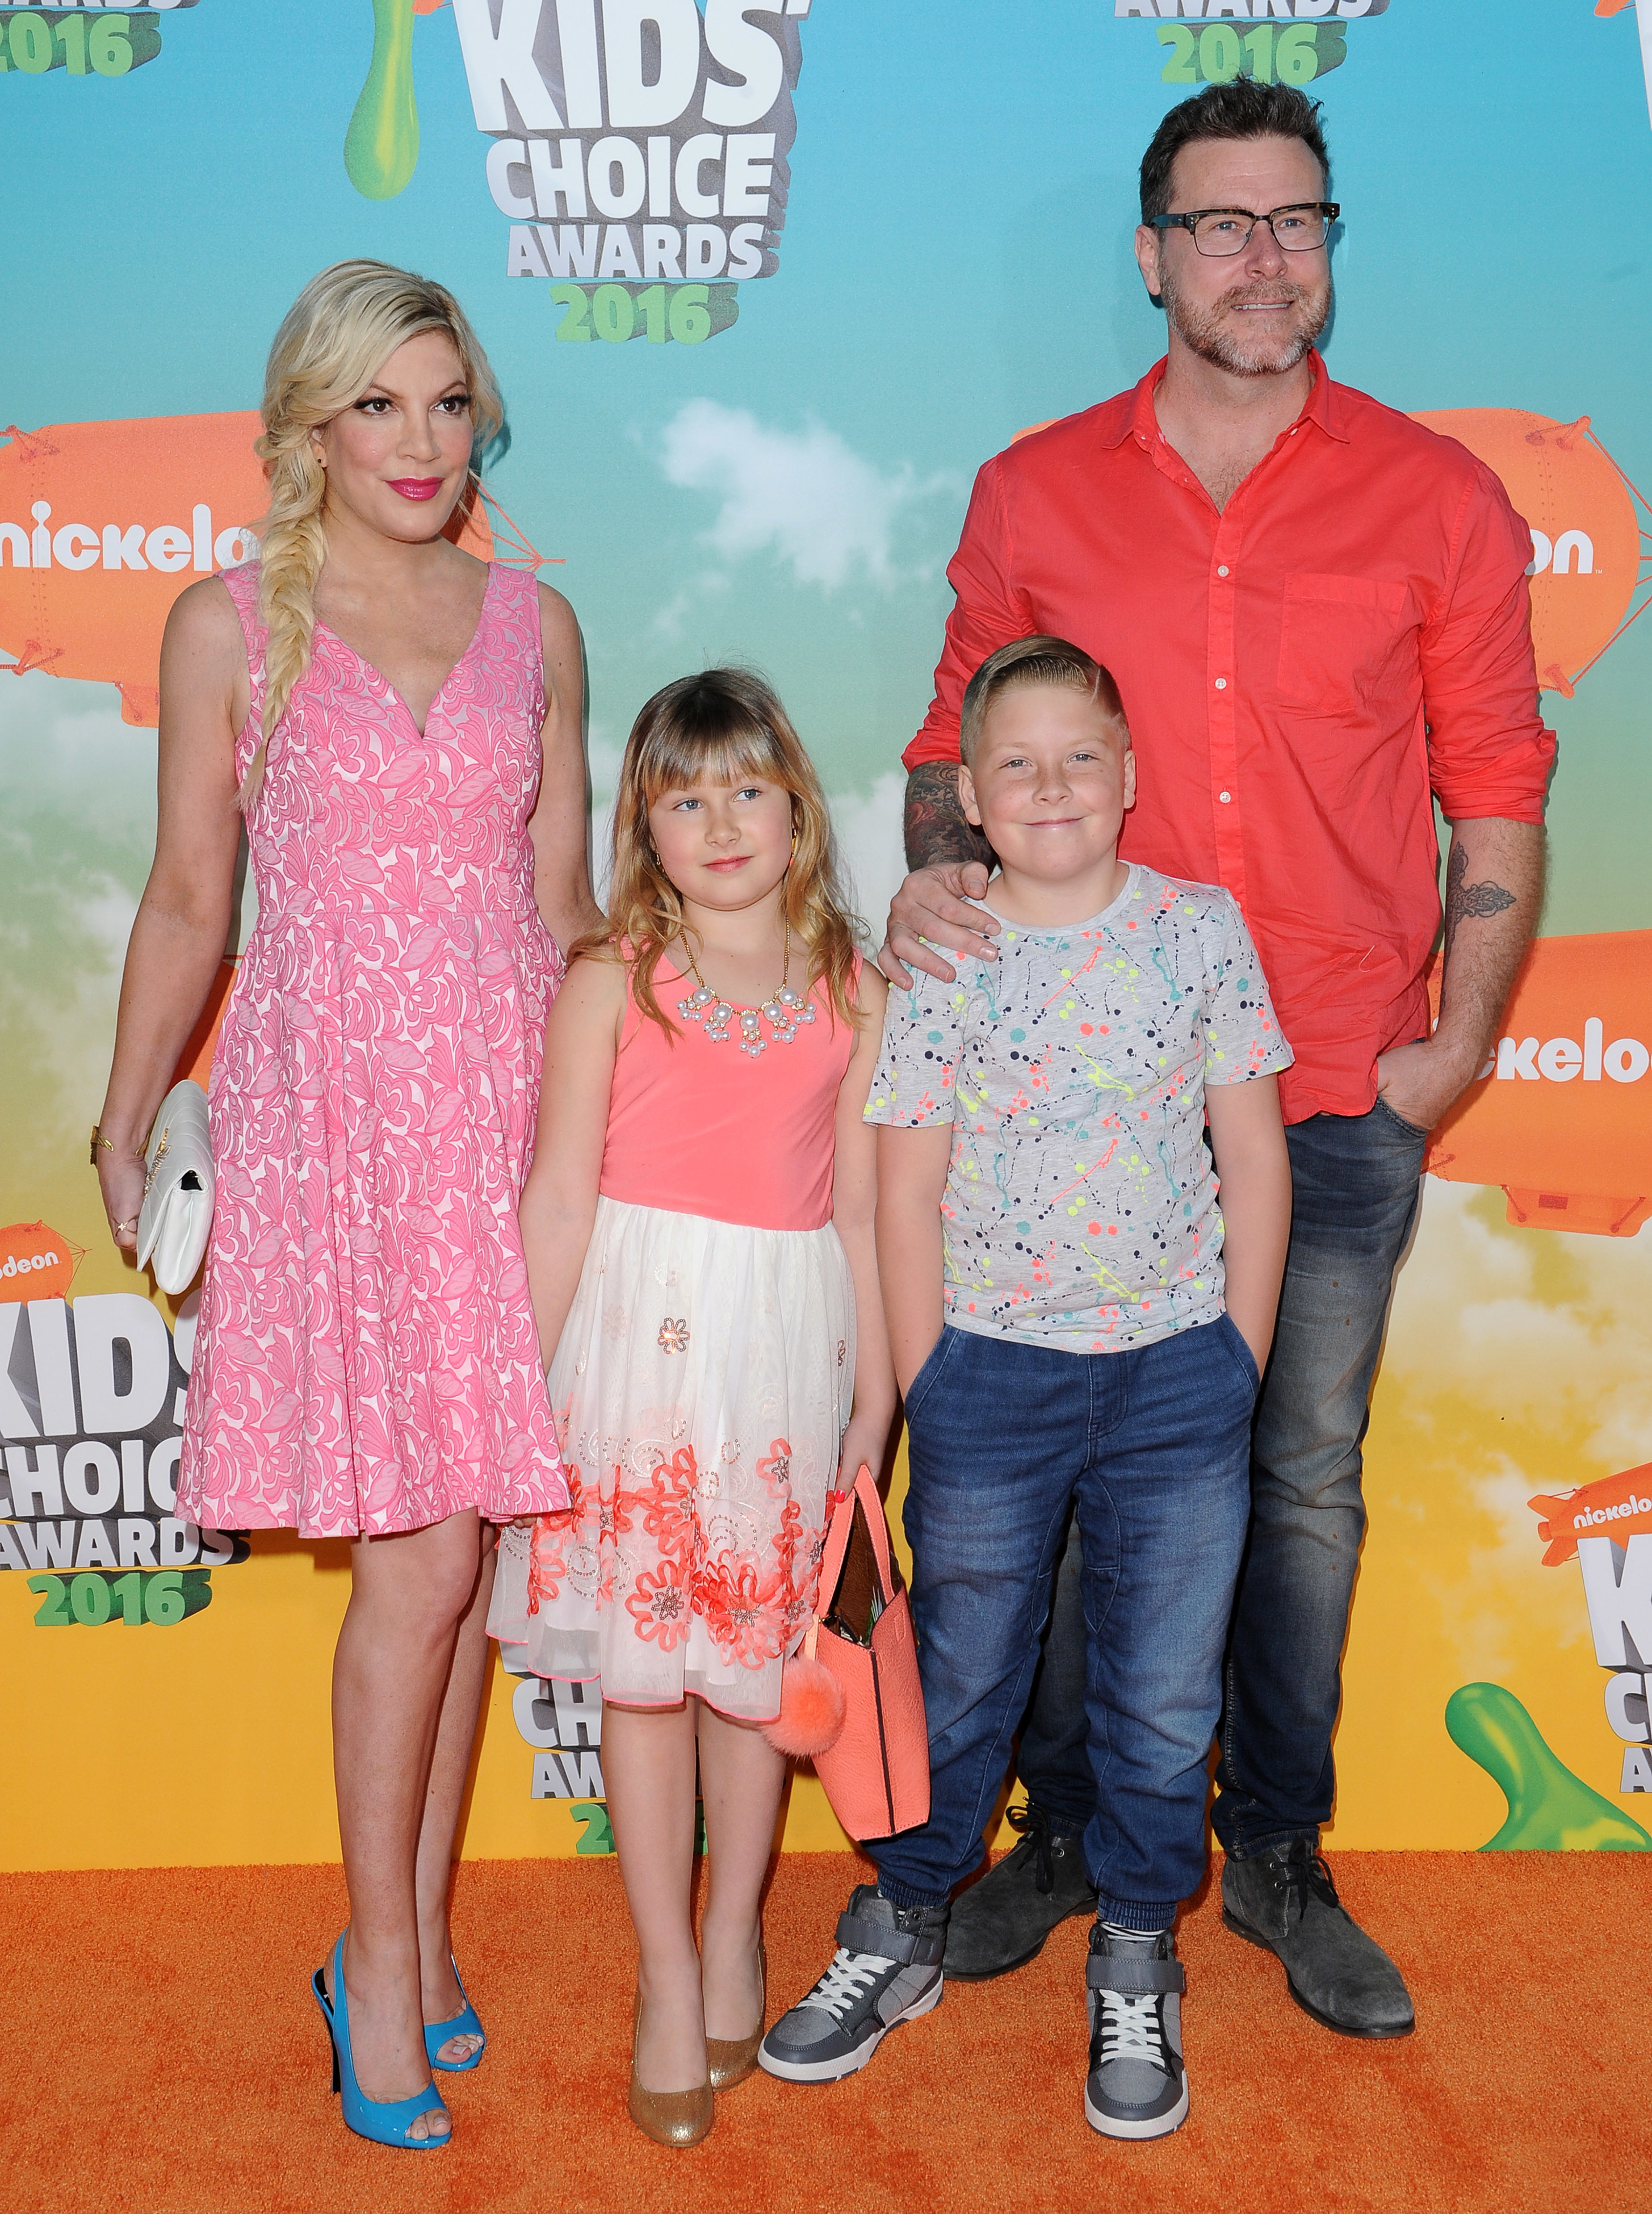 Tori Spelling, Stella Doreen McDermott, Liam Aaron McDermott and Dean McDermott attend Nickelodeon's 2016 Kids' Choice Awards in Inglewood on March 12, 2016.